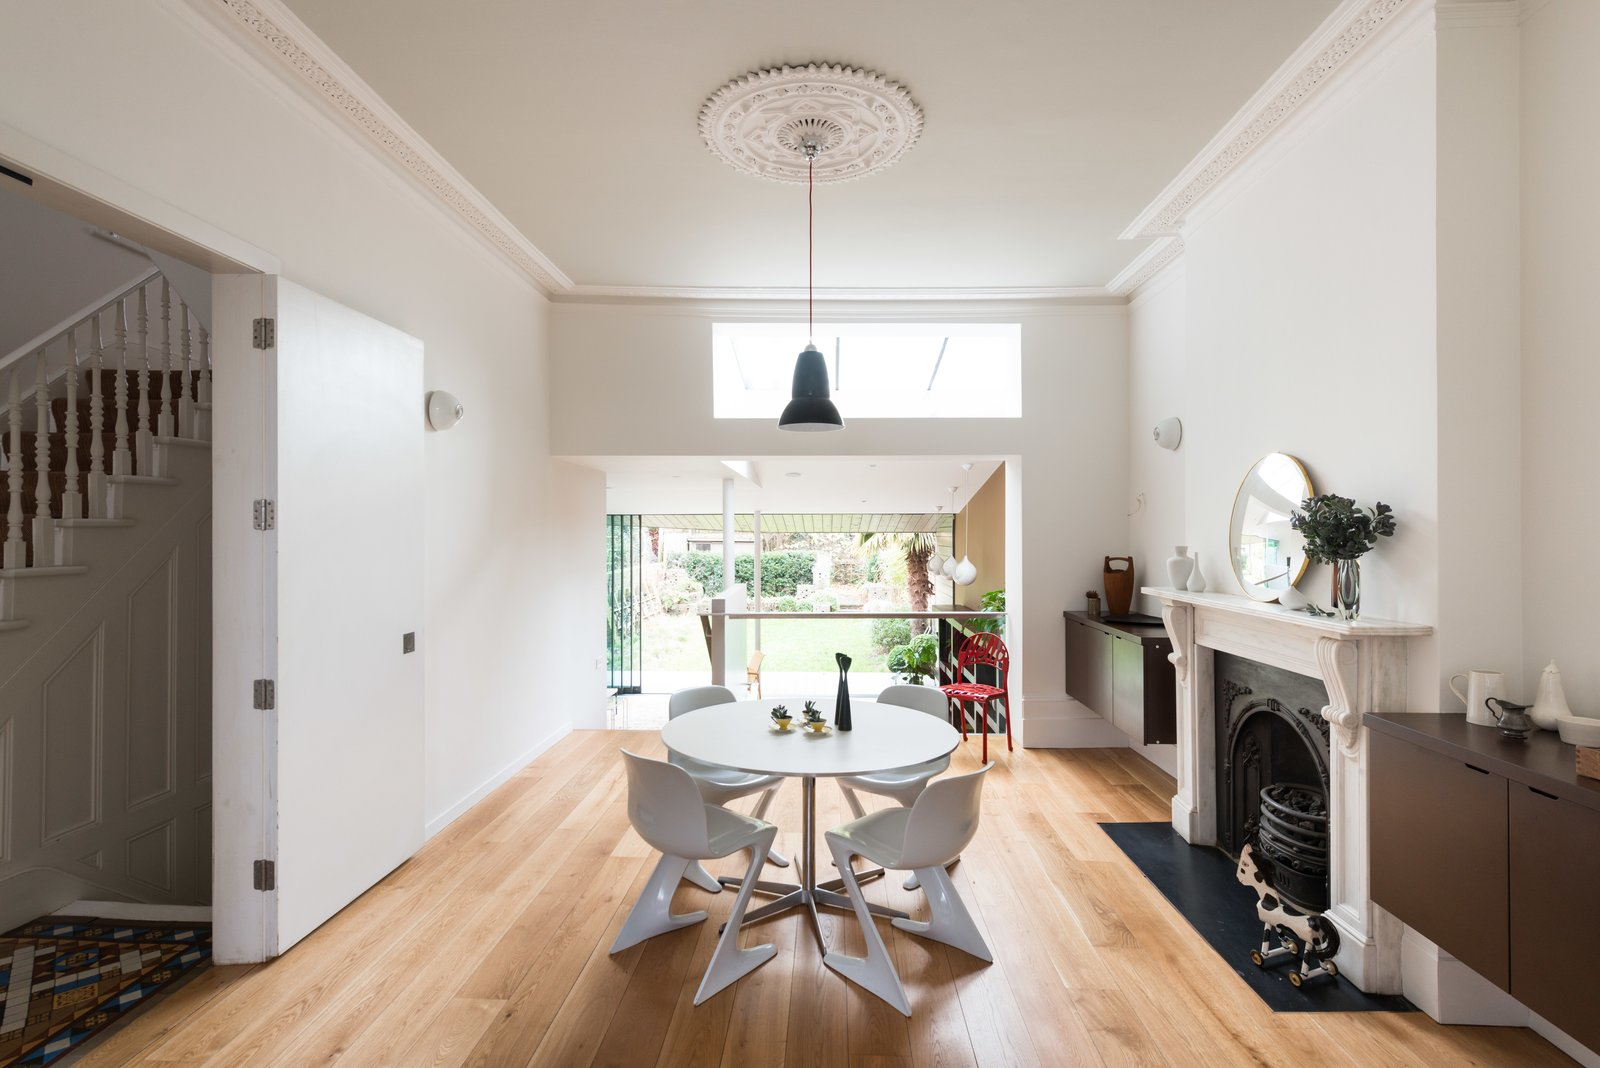 Photo 1 of 9 in A Fusion of Old and New Makes this Home For Sale Shine on London's Womersley Road